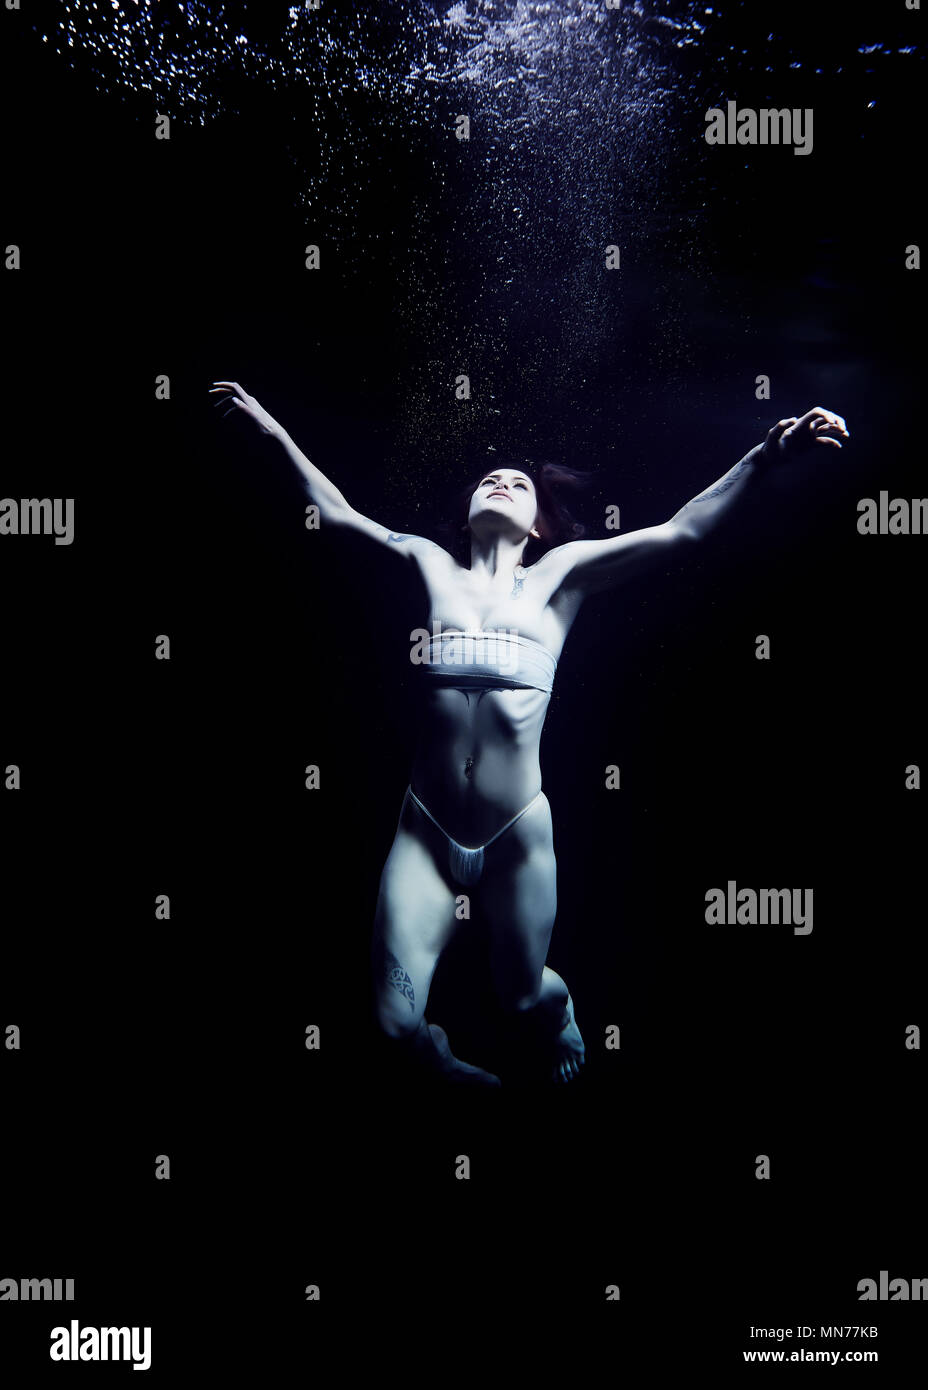 Submerged in an ocean of depression - Stock Image